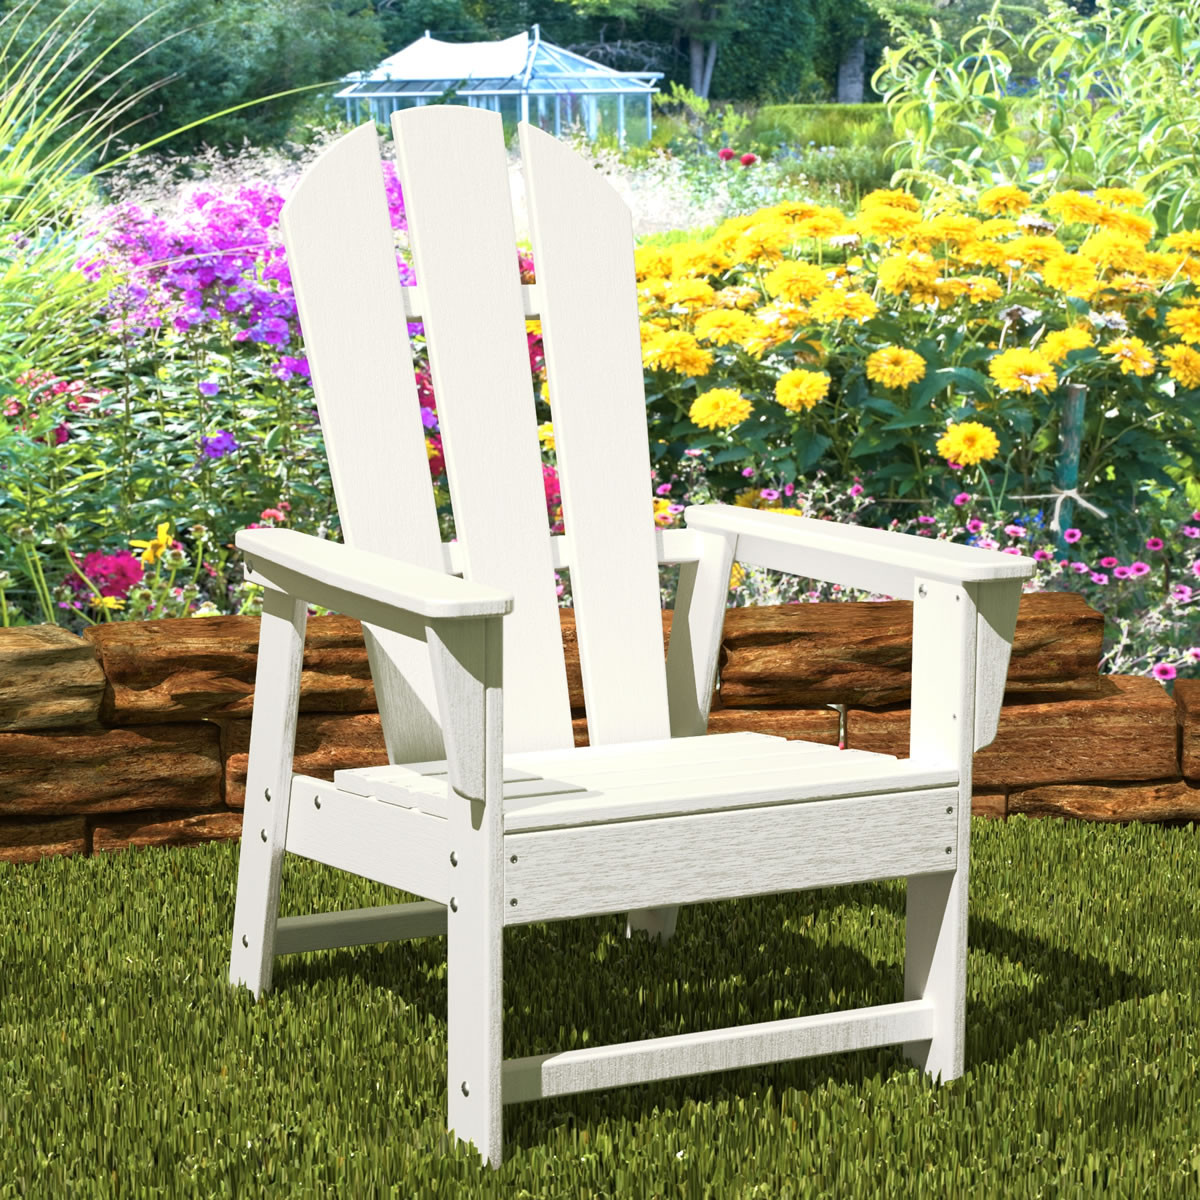 polywood classic adirondack chair cane seat original as seen on qvc outdoor furniture collections